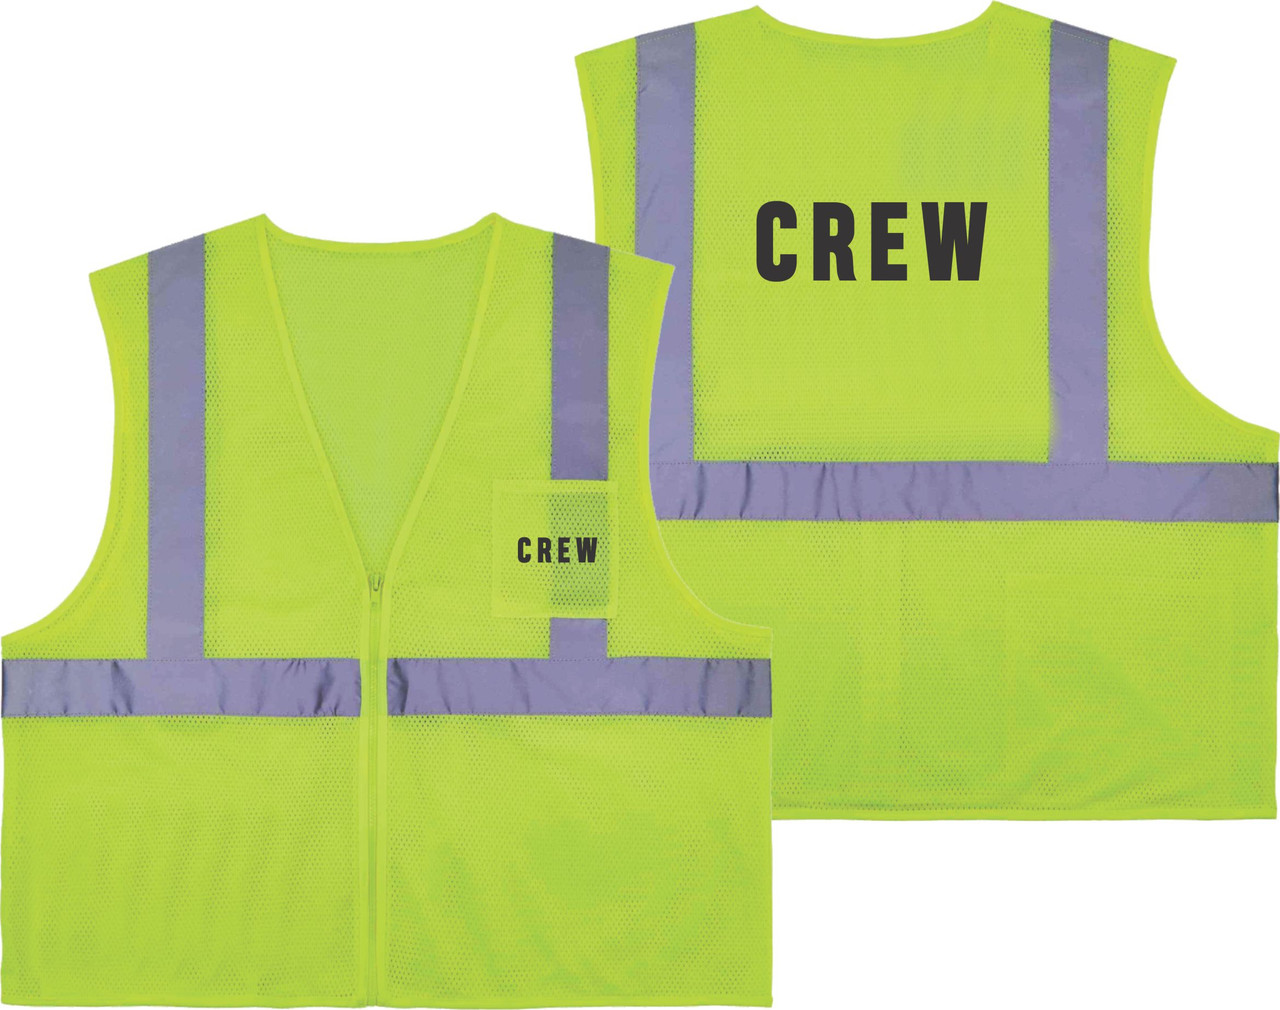 Printed CREW Safety Vest Class 2 - Great for Hi Vis Vest for Events